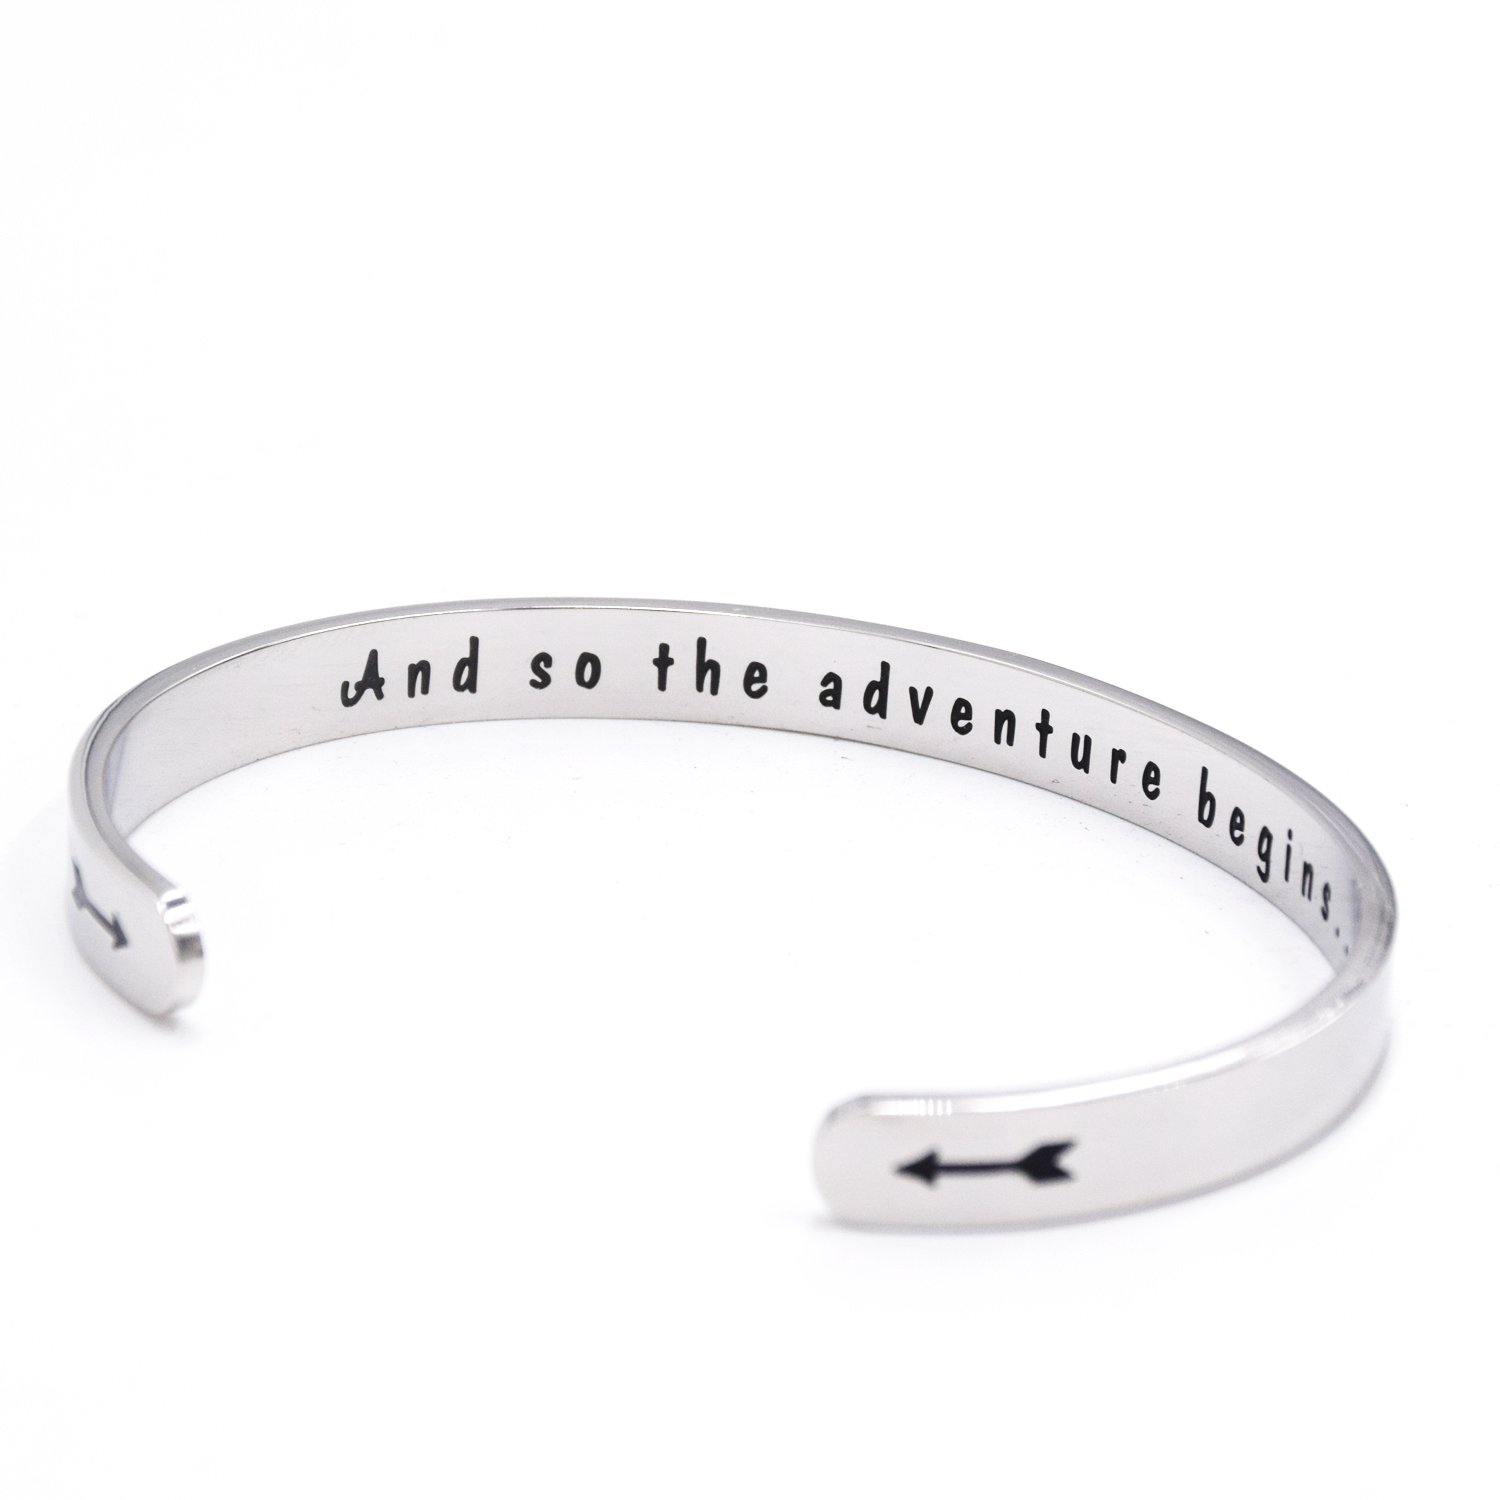 LParkin Class of 2018 2019 Gift And So the Adventure Begins Cuff Bracelet Graduation Gift (Cuff) by LParkin (Image #3)